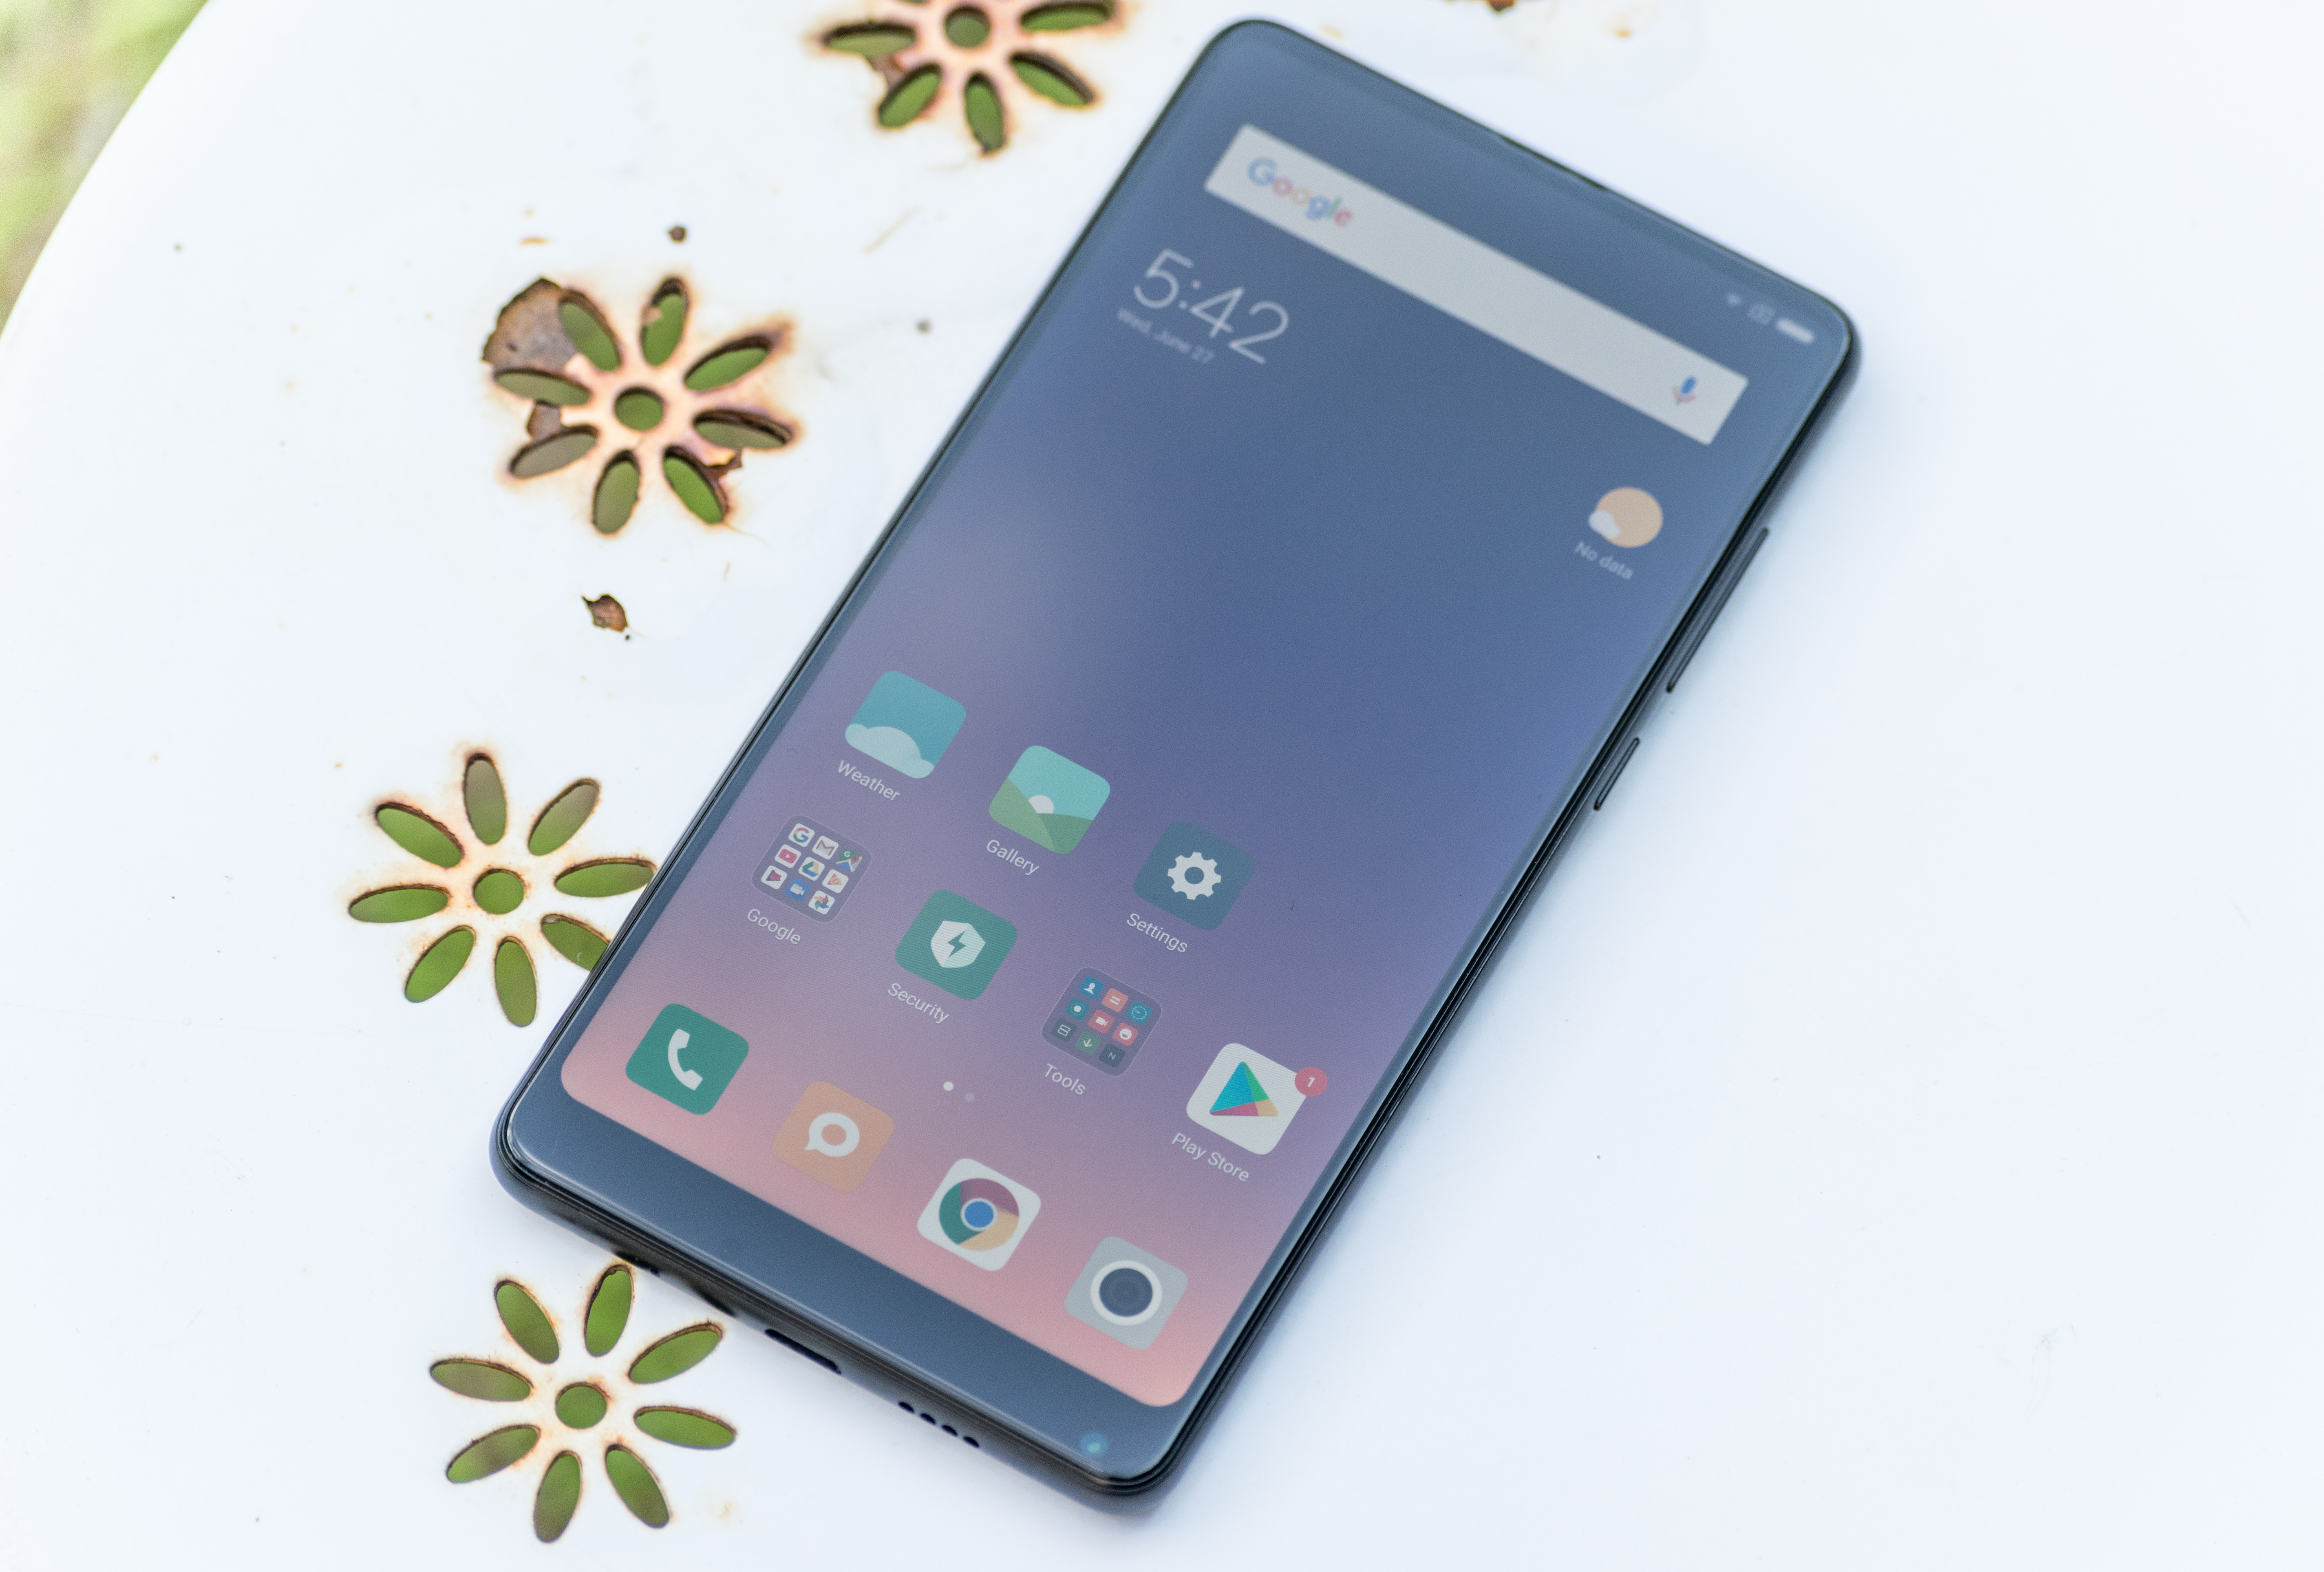 The Xiaomi Mi Mix 2s Review Fantastic Overall Value Back On Which We Find Fingerprint Sensor As Well A Very Iphone X Inspired Camera Housing One Of Major Design Changes Compared To 2